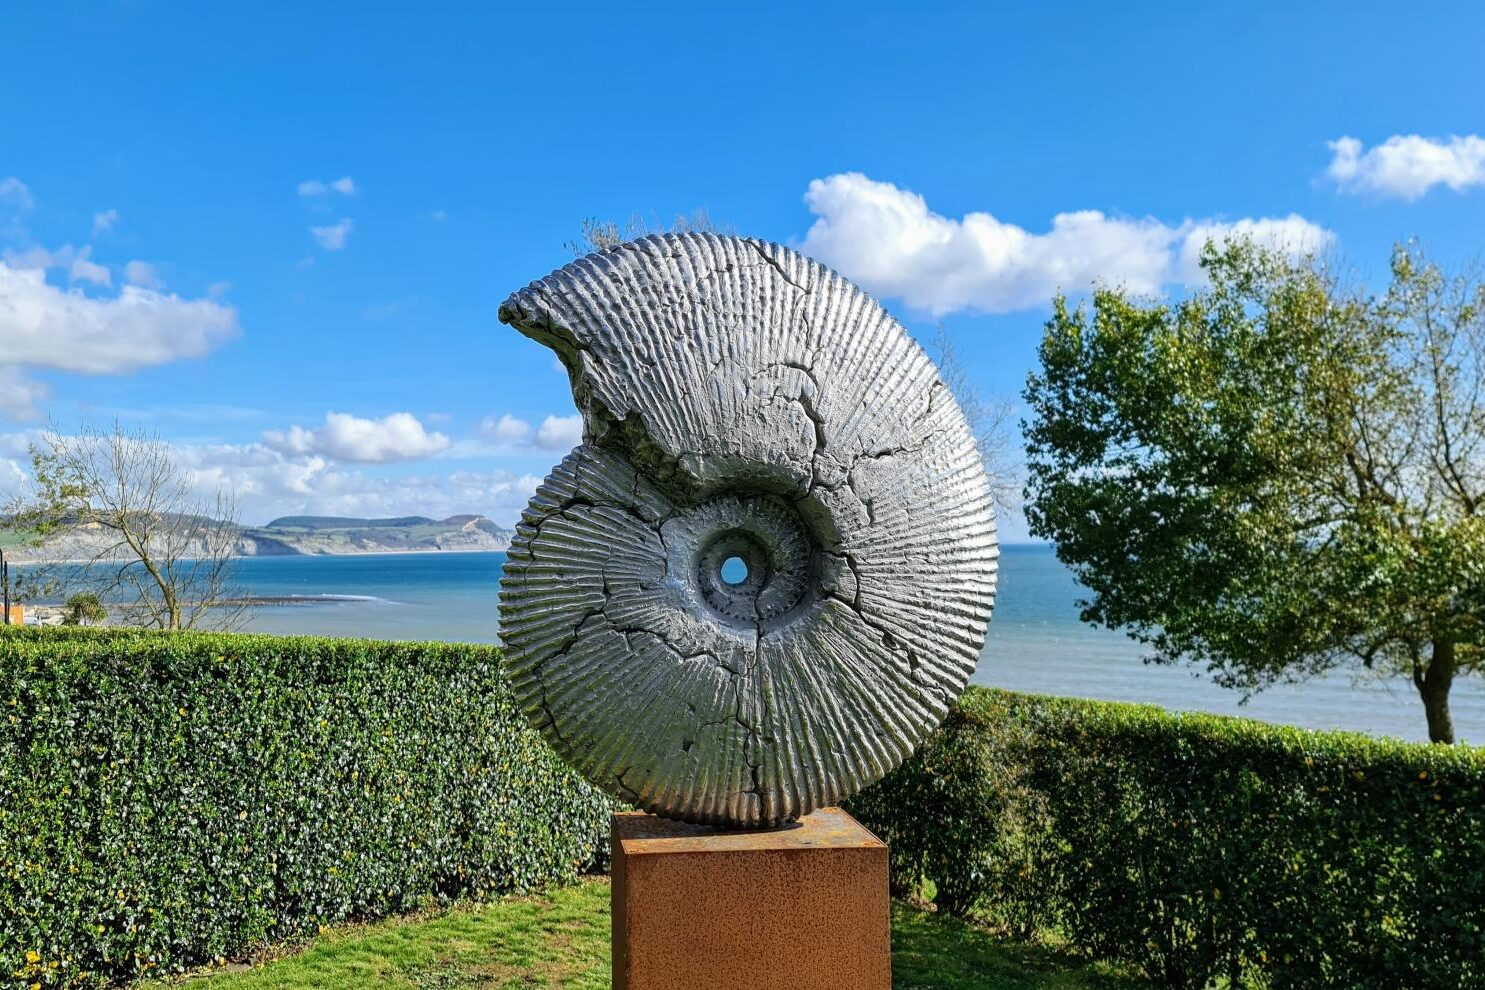 A sculpture of an annomite, a fossilised spiral shell of an ancient squid-like creature. It's cracked and sits on a wooden plinth against a sunny backdrop of the gardens, sea and blue skies